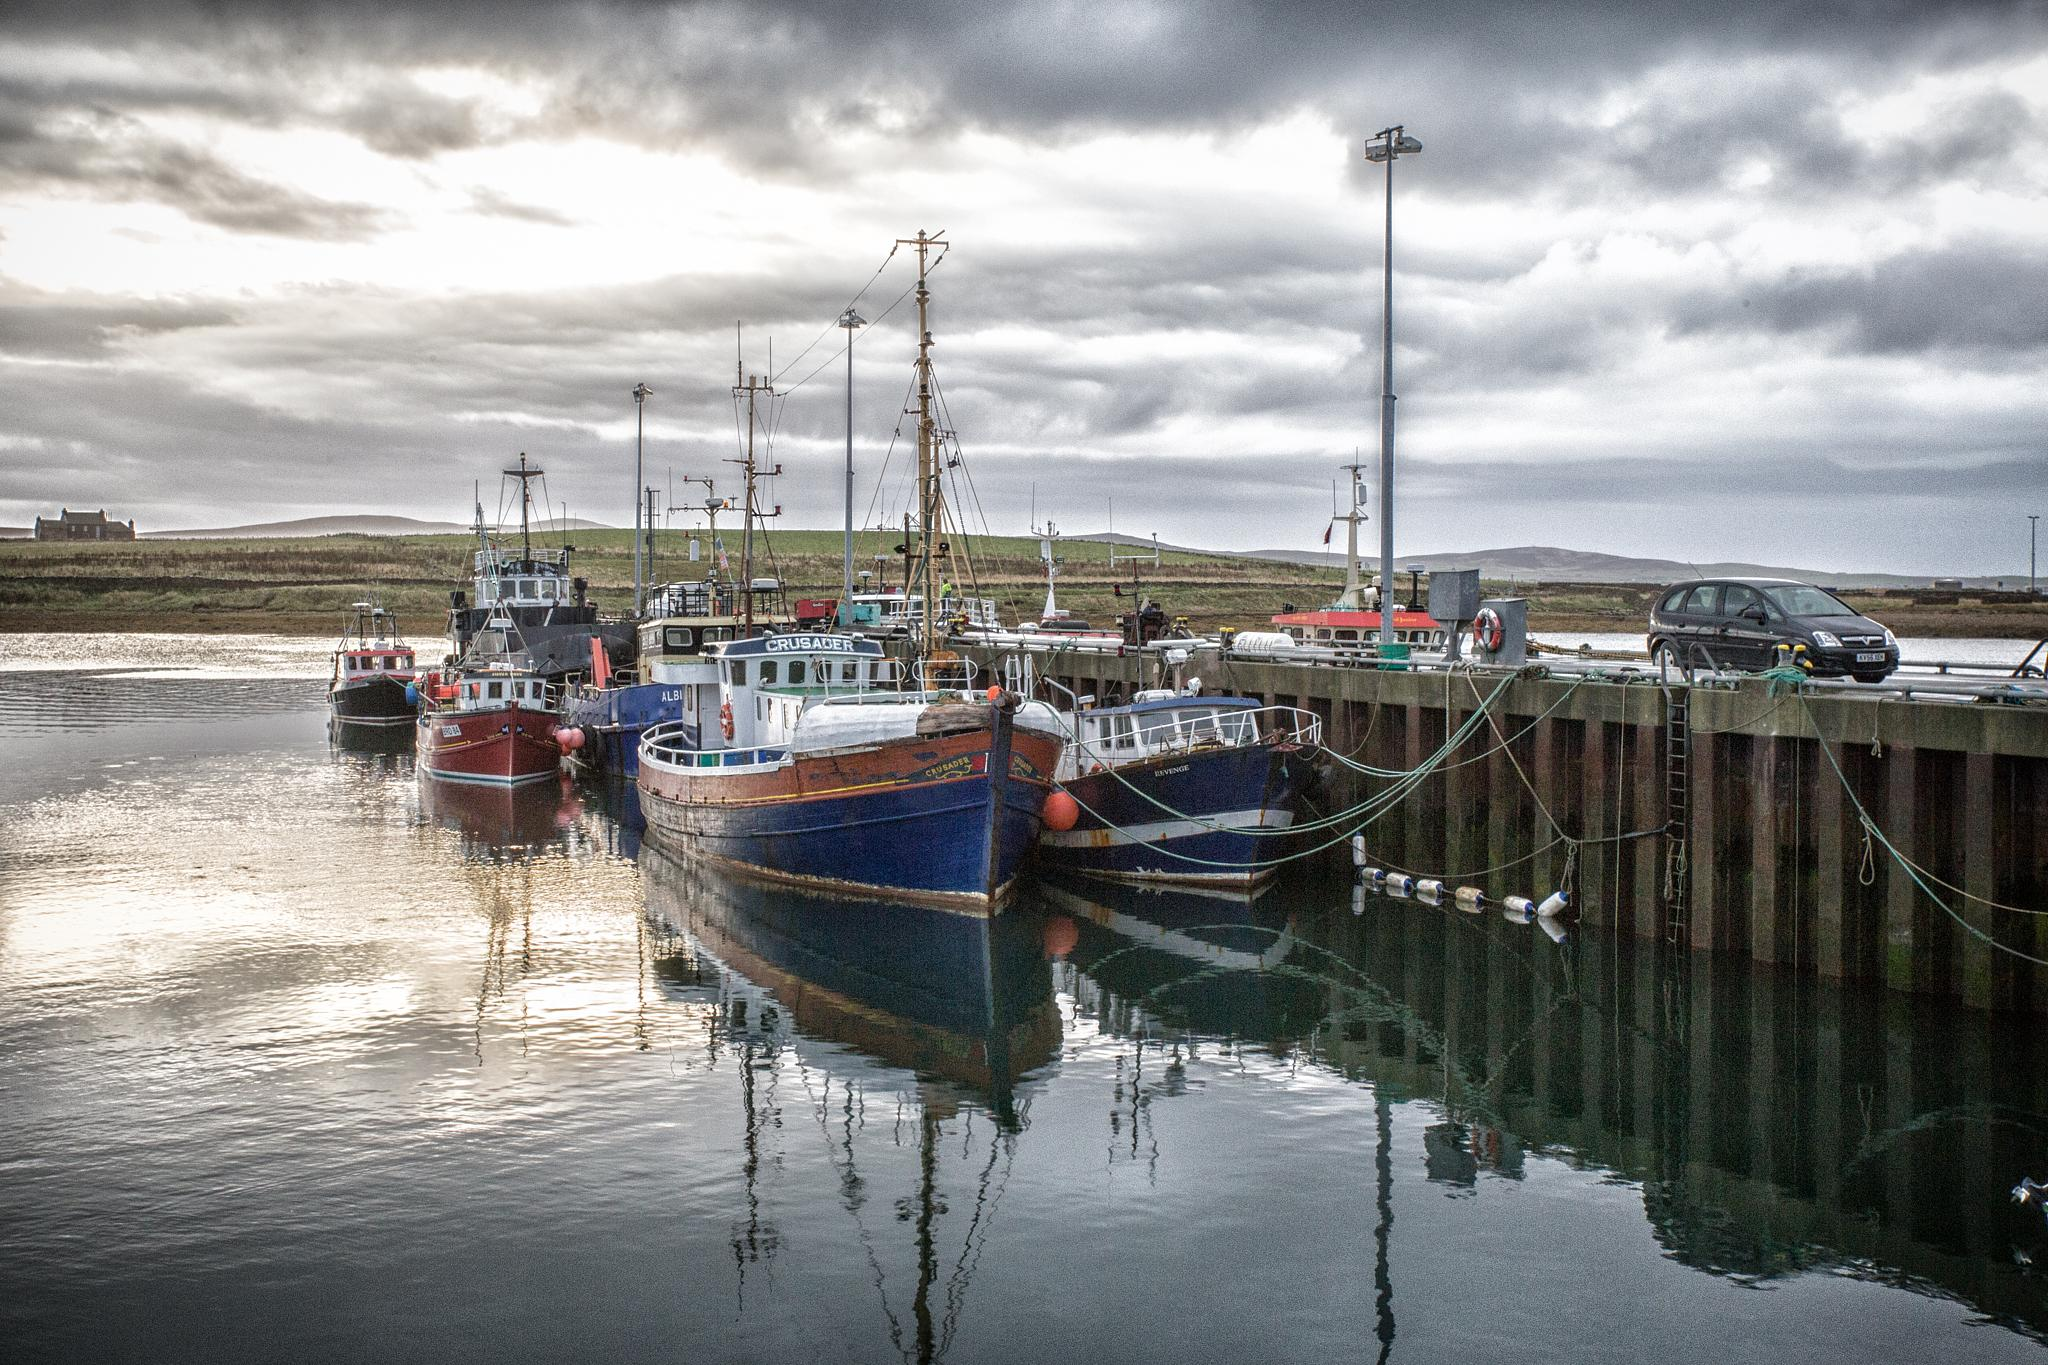 Early morning, Stromness Harbour by isegarth